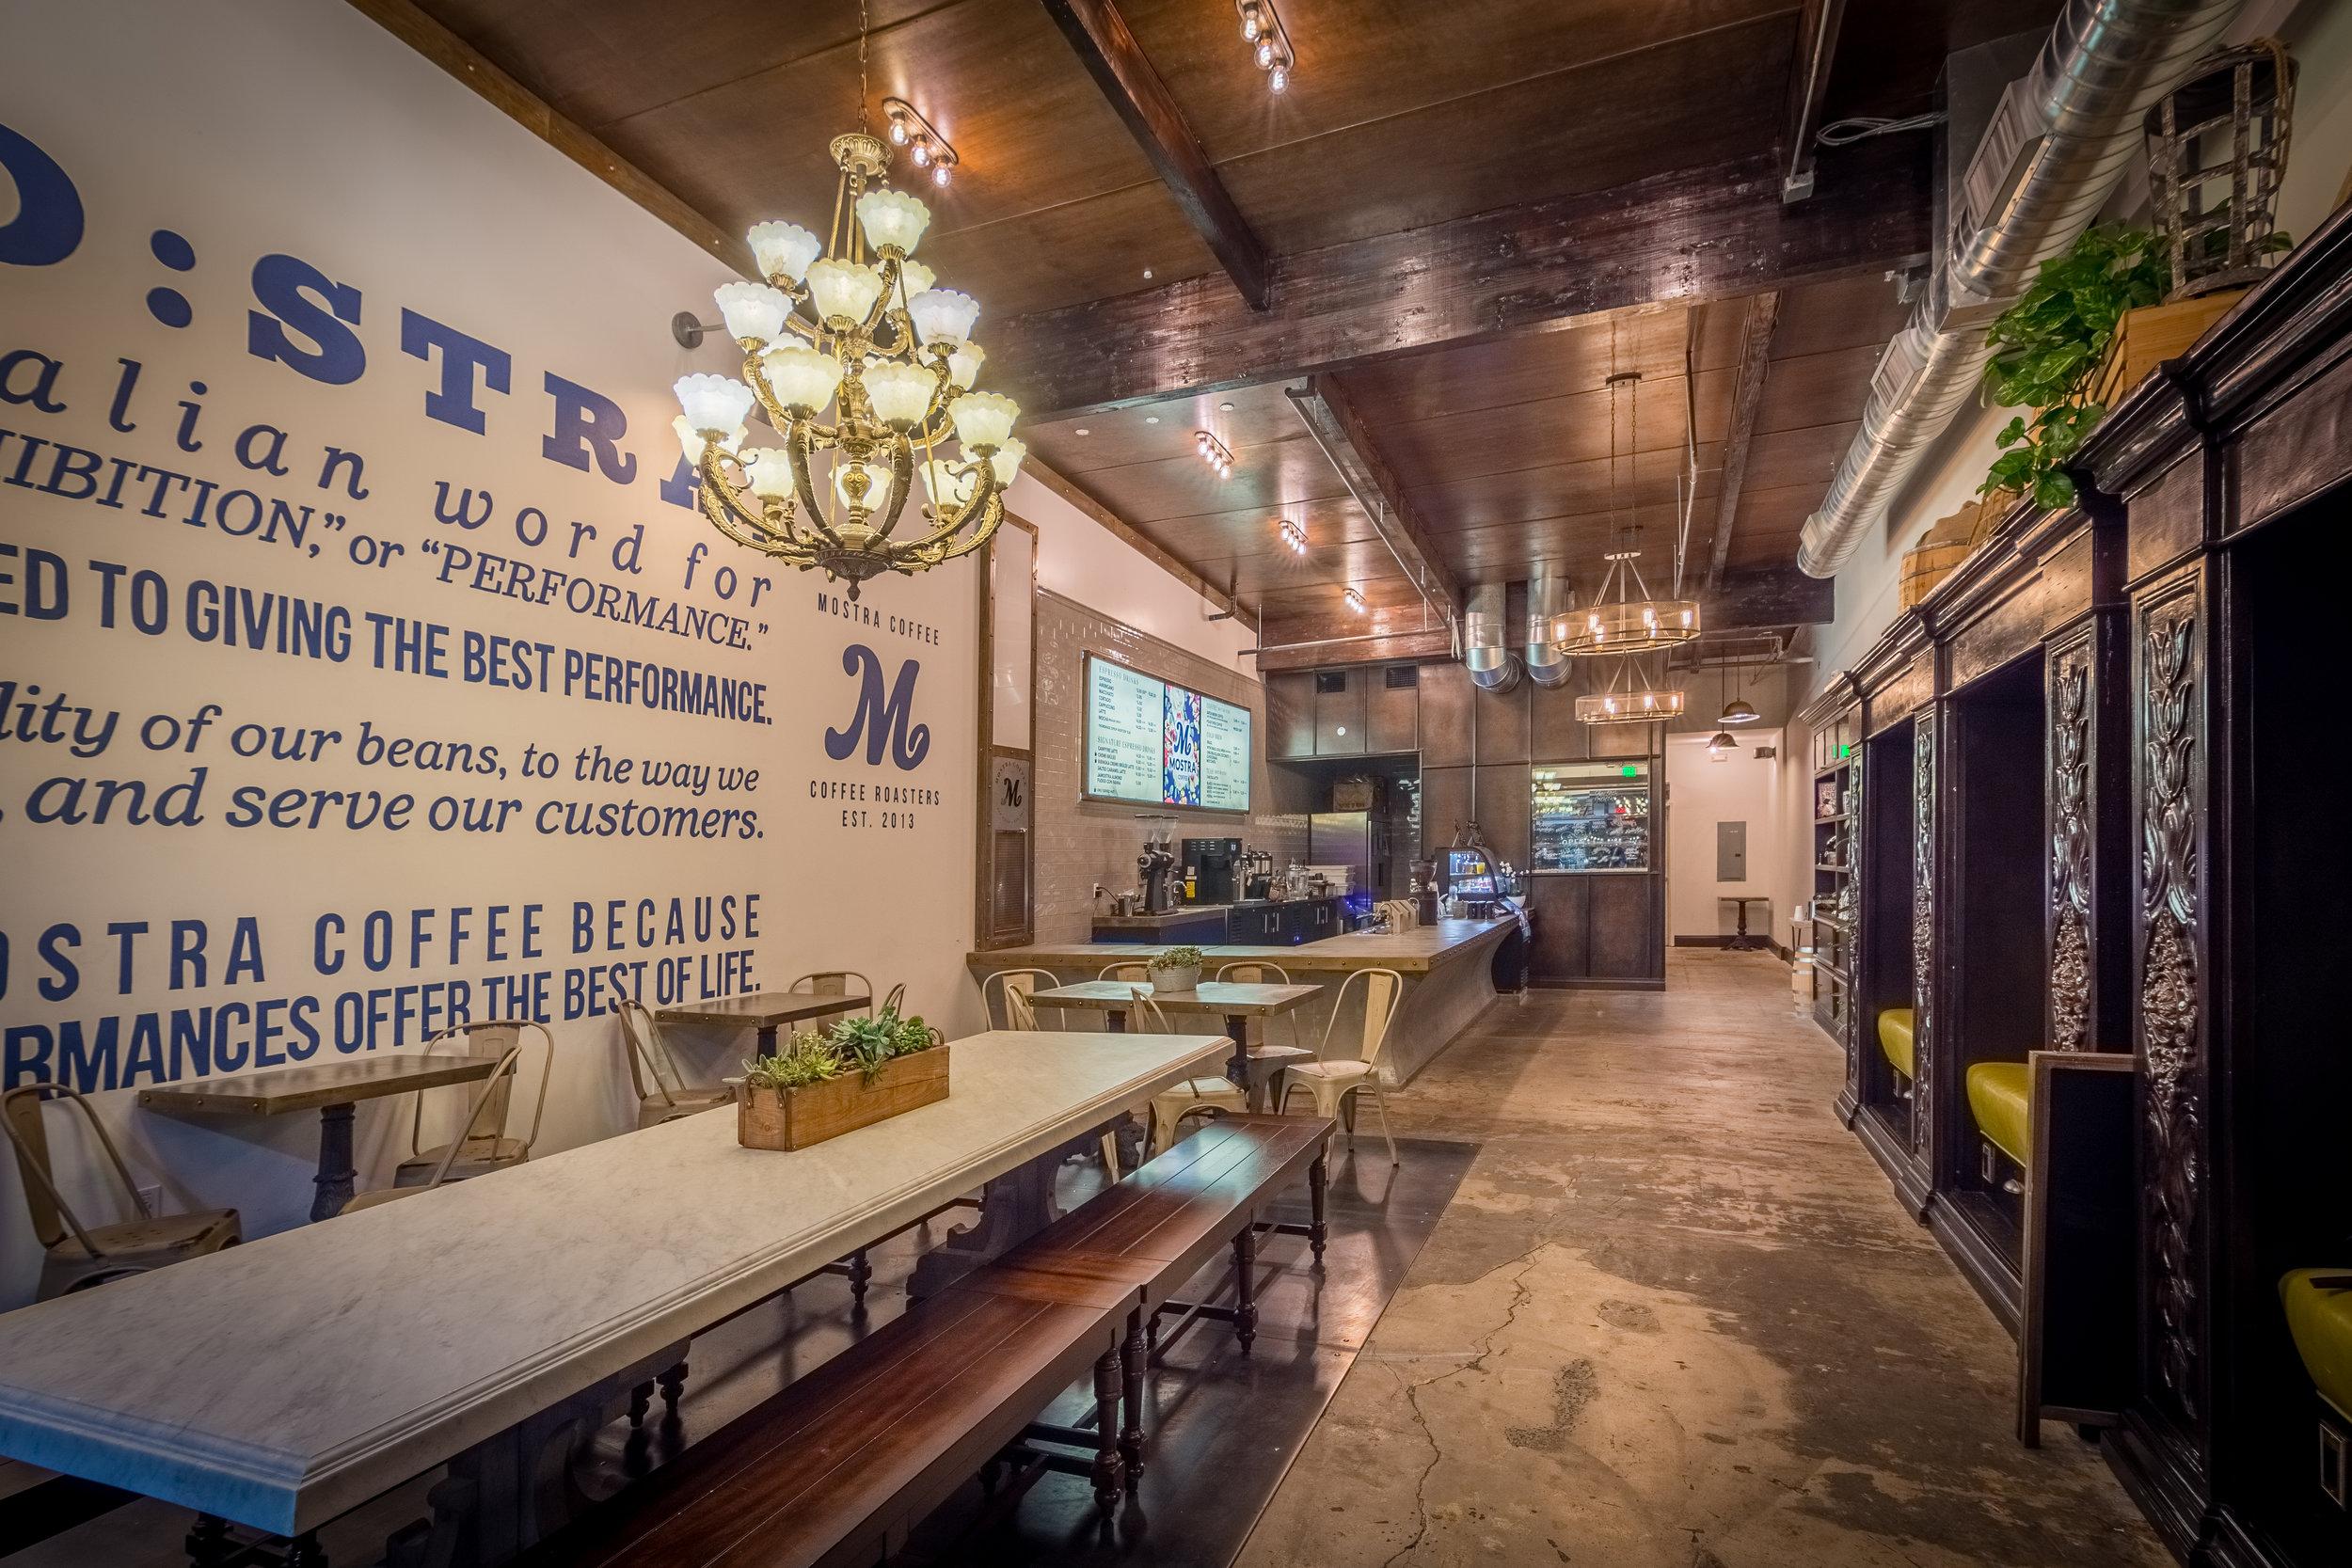 Mostra Retail Hours Mostra Coffee